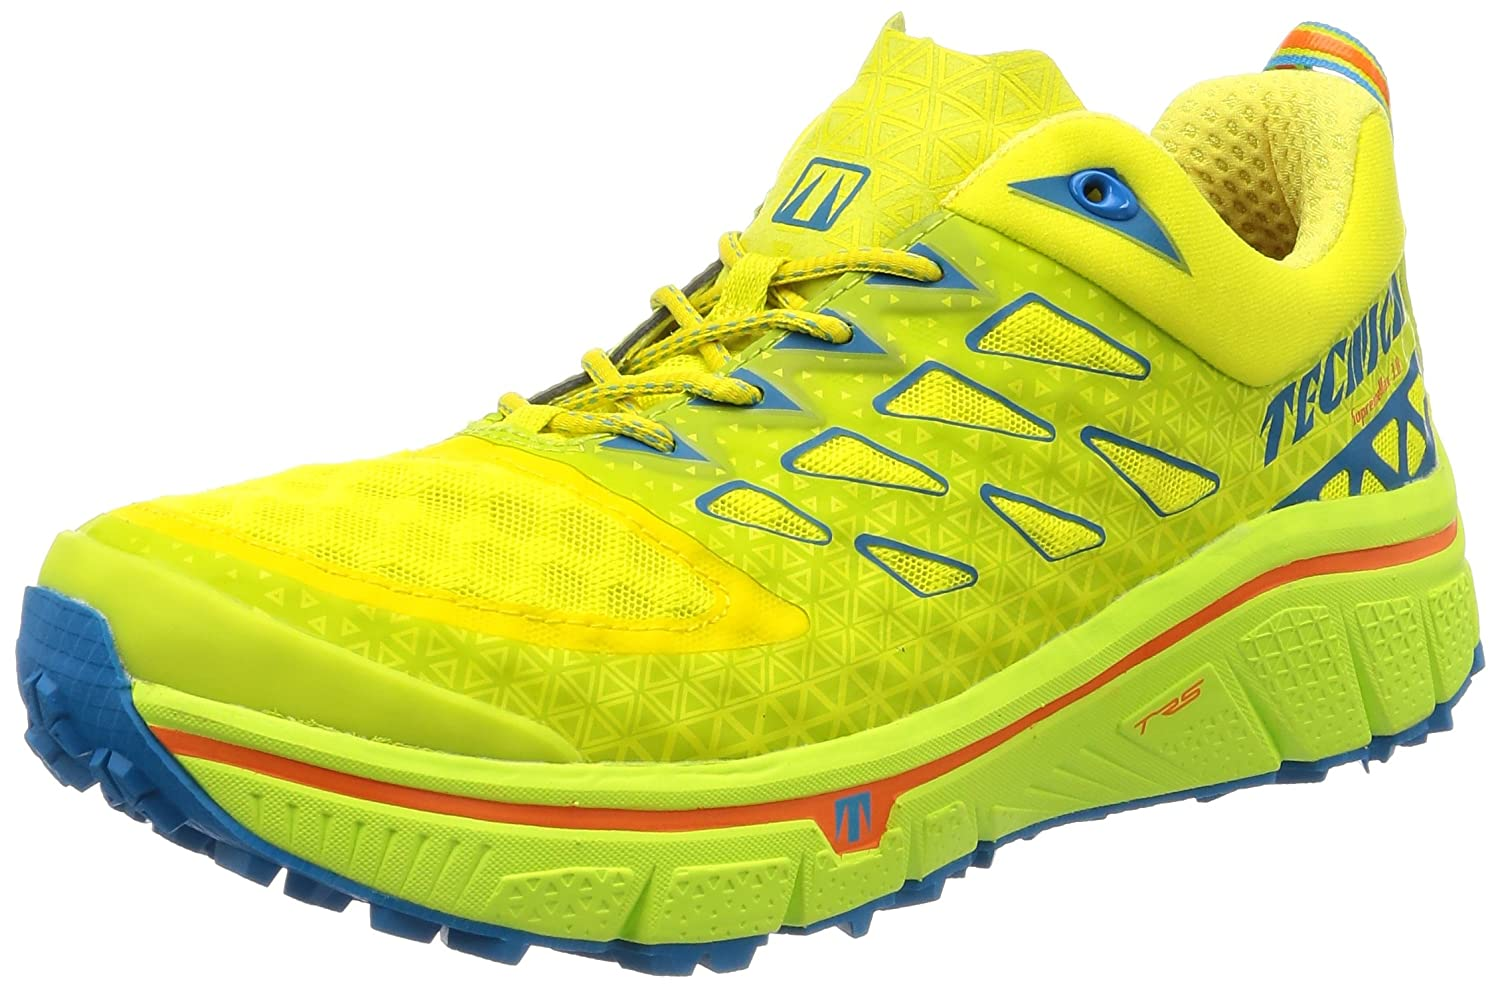 Tecnica Supreme Max 3.0 ms, amarillo: Amazon.es: Zapatos y ...